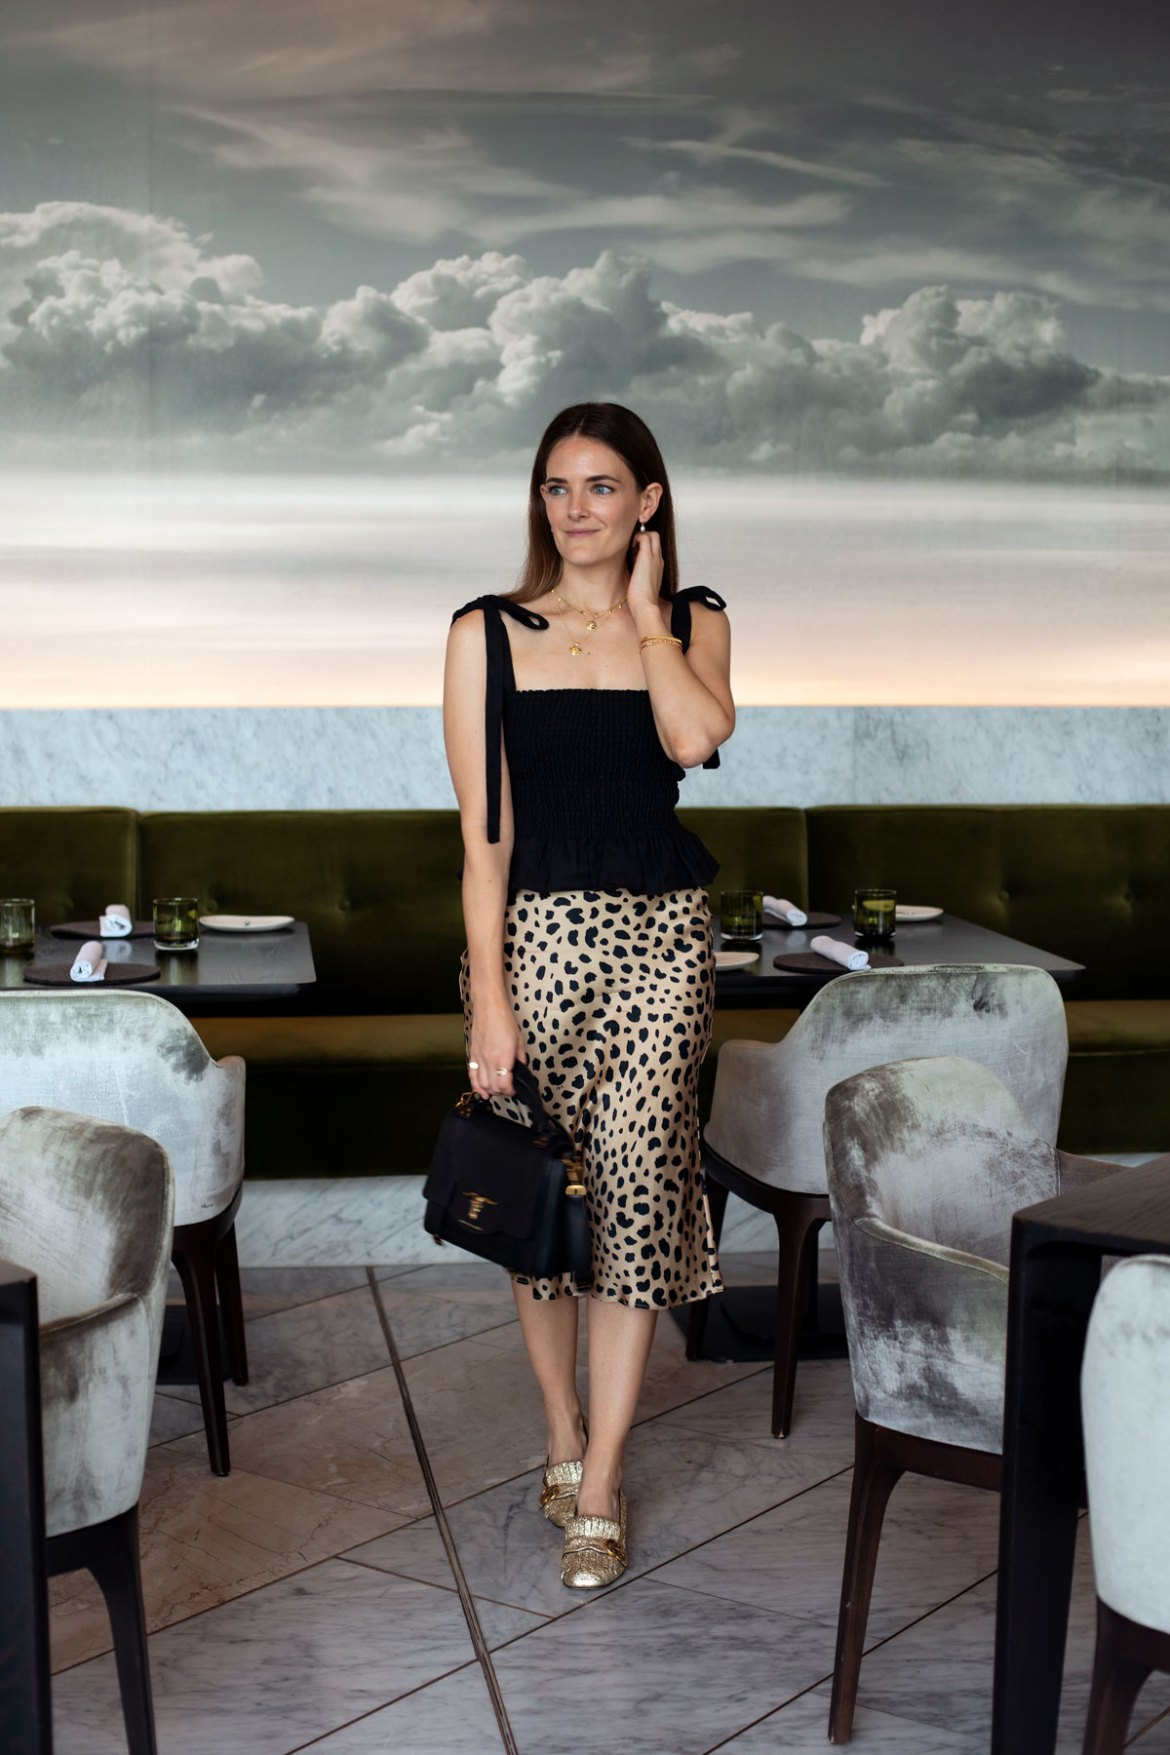 Reformation linen top and Realisation Par leopard print skirt worn by Perth blogger Jenelle Witty